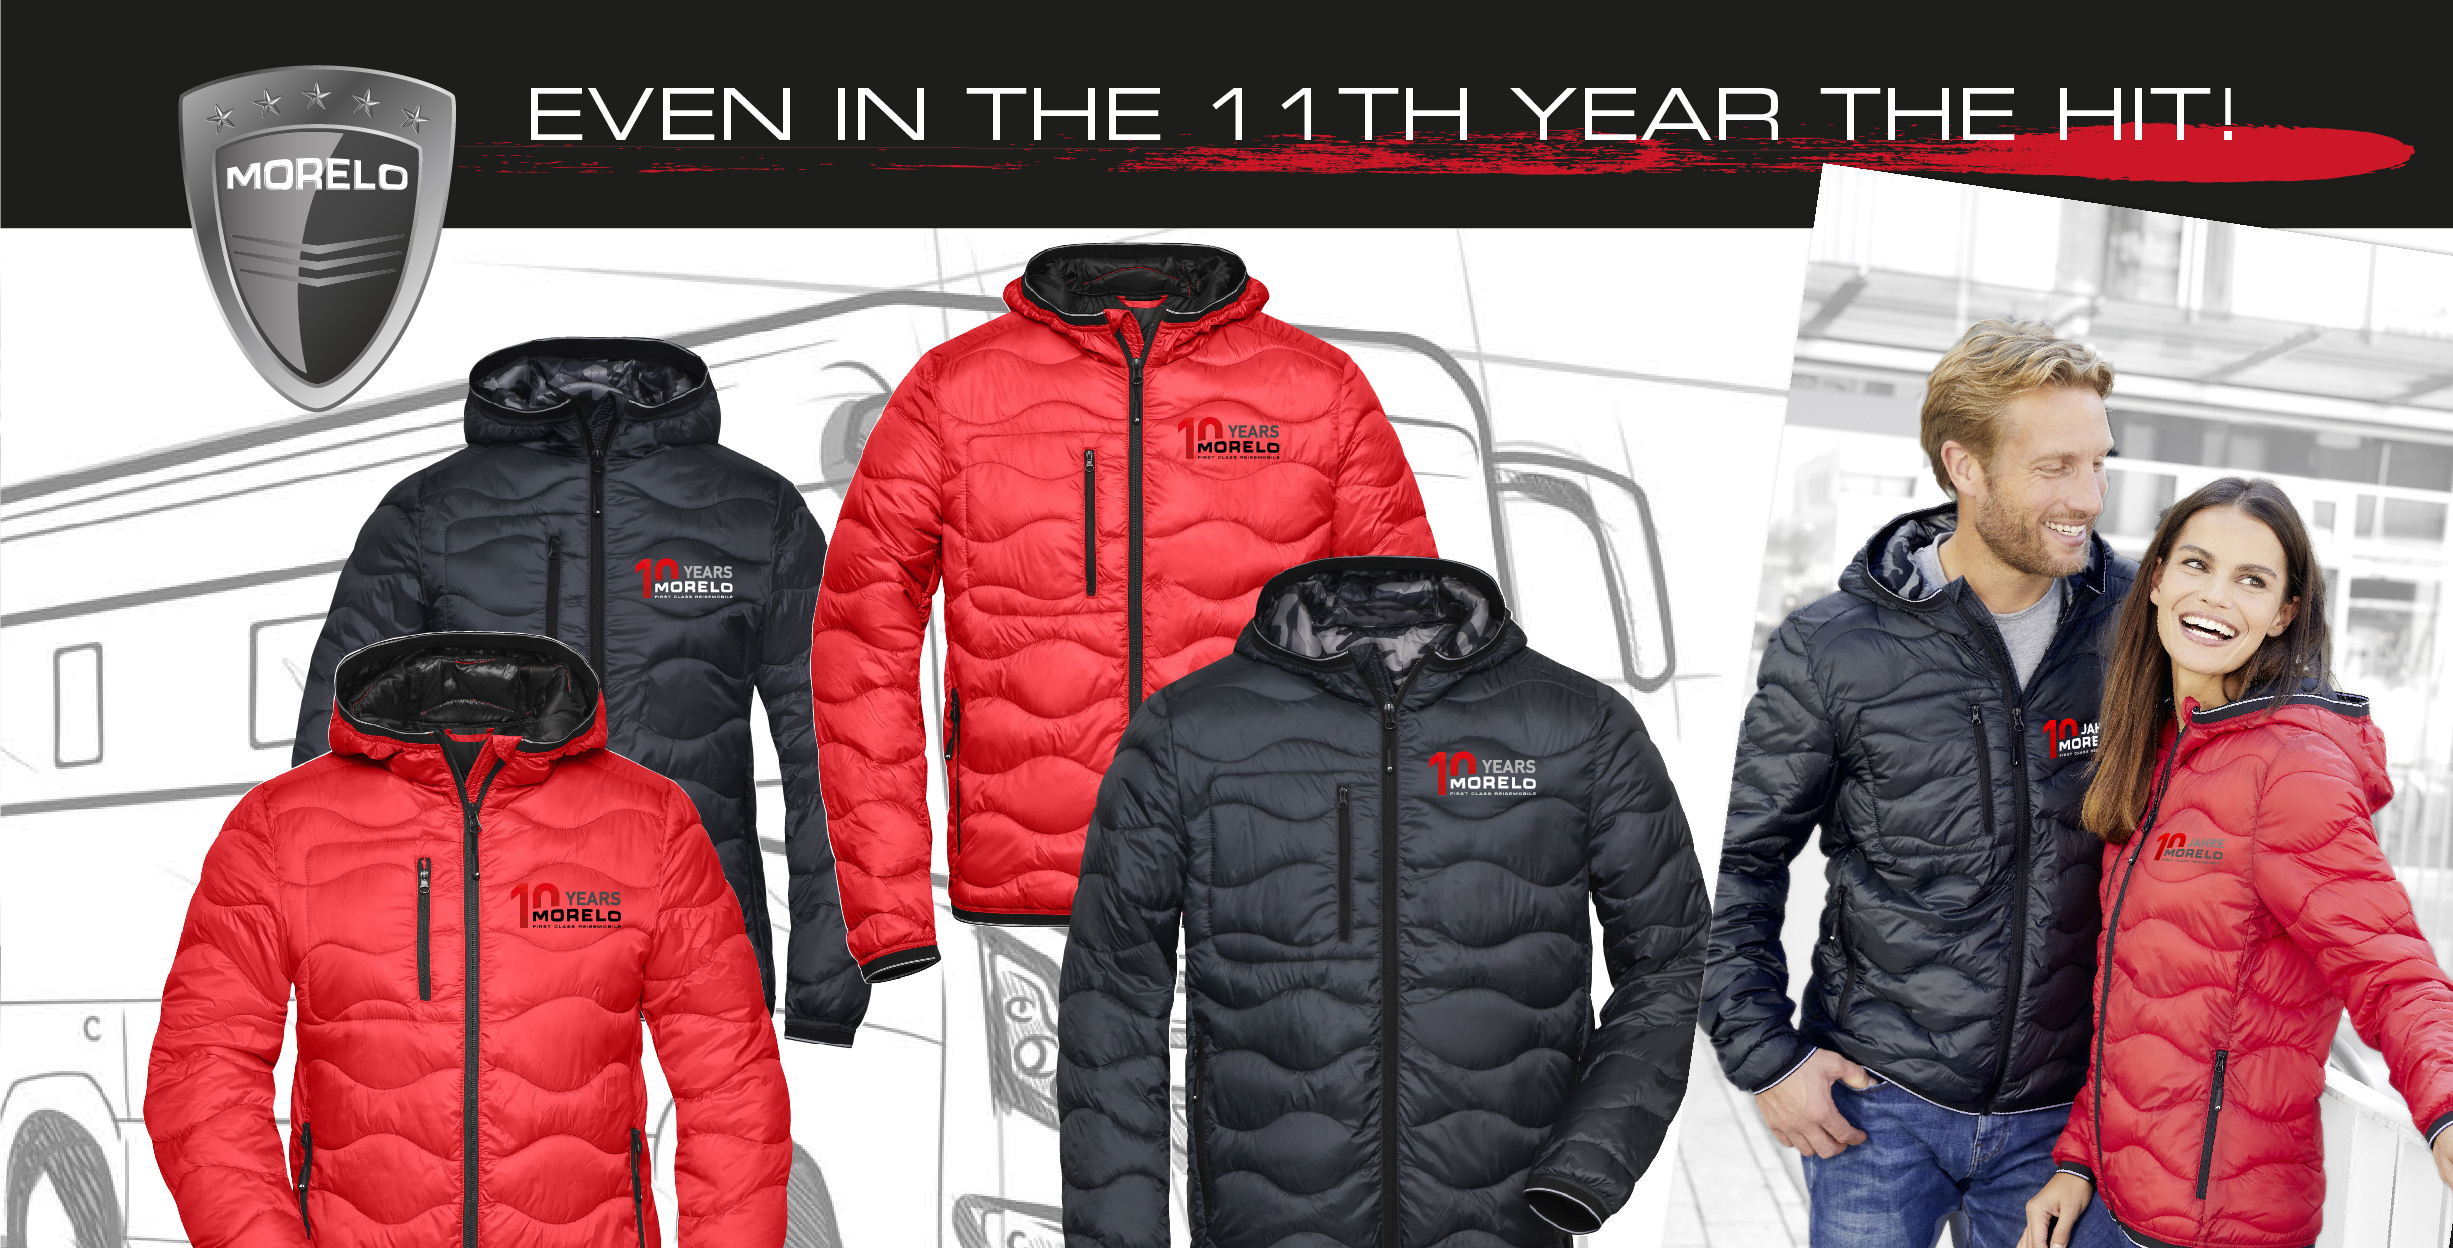 get your anniversary jacket!